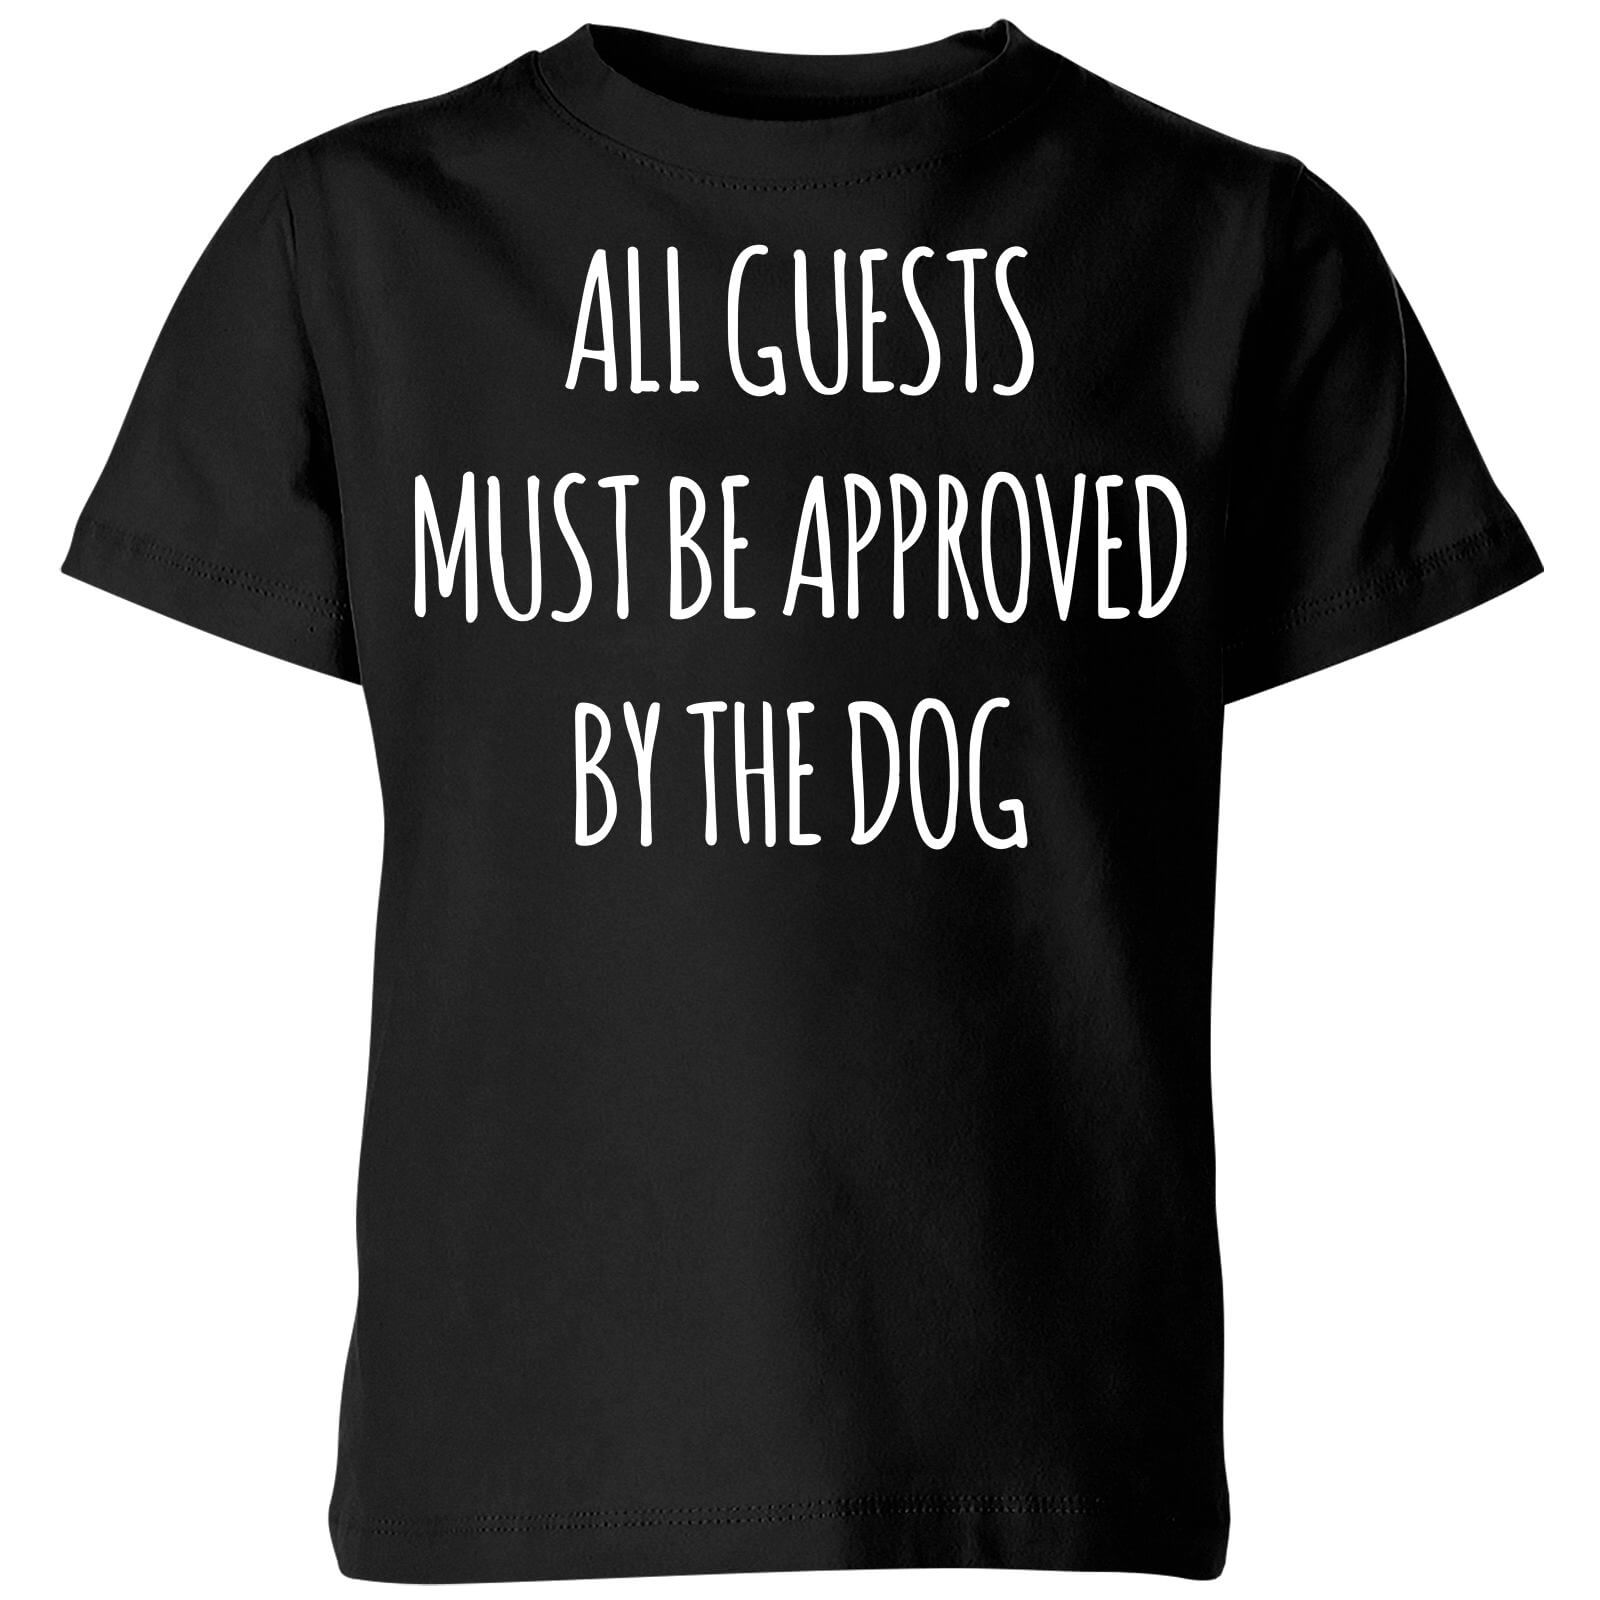 All Guests Must Be Approved By The Dog Kids